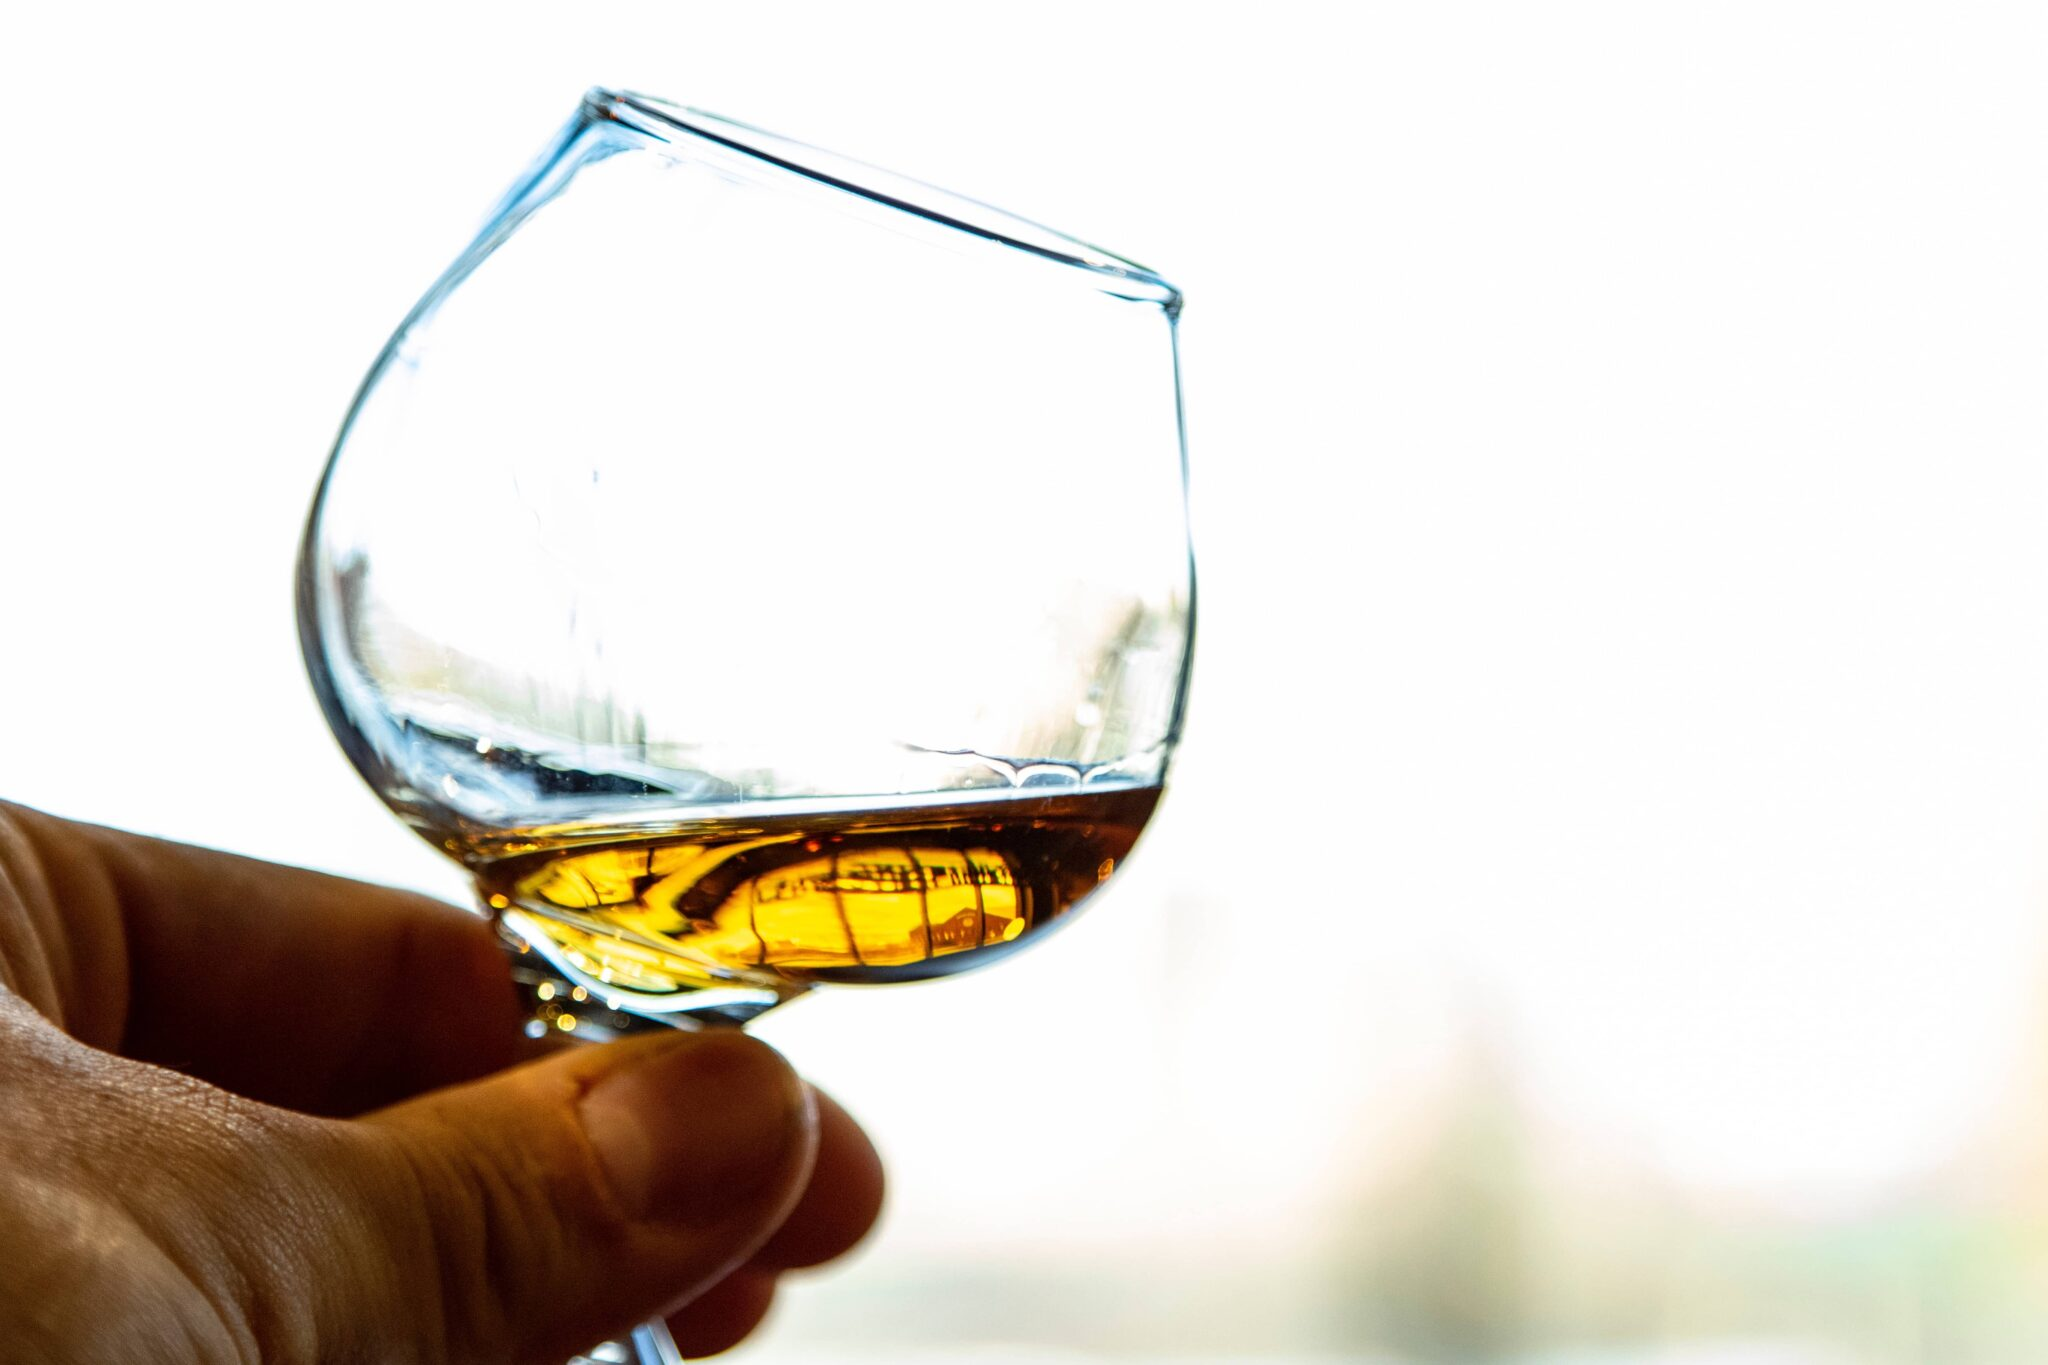 Discover all whisky health benefits in our article!